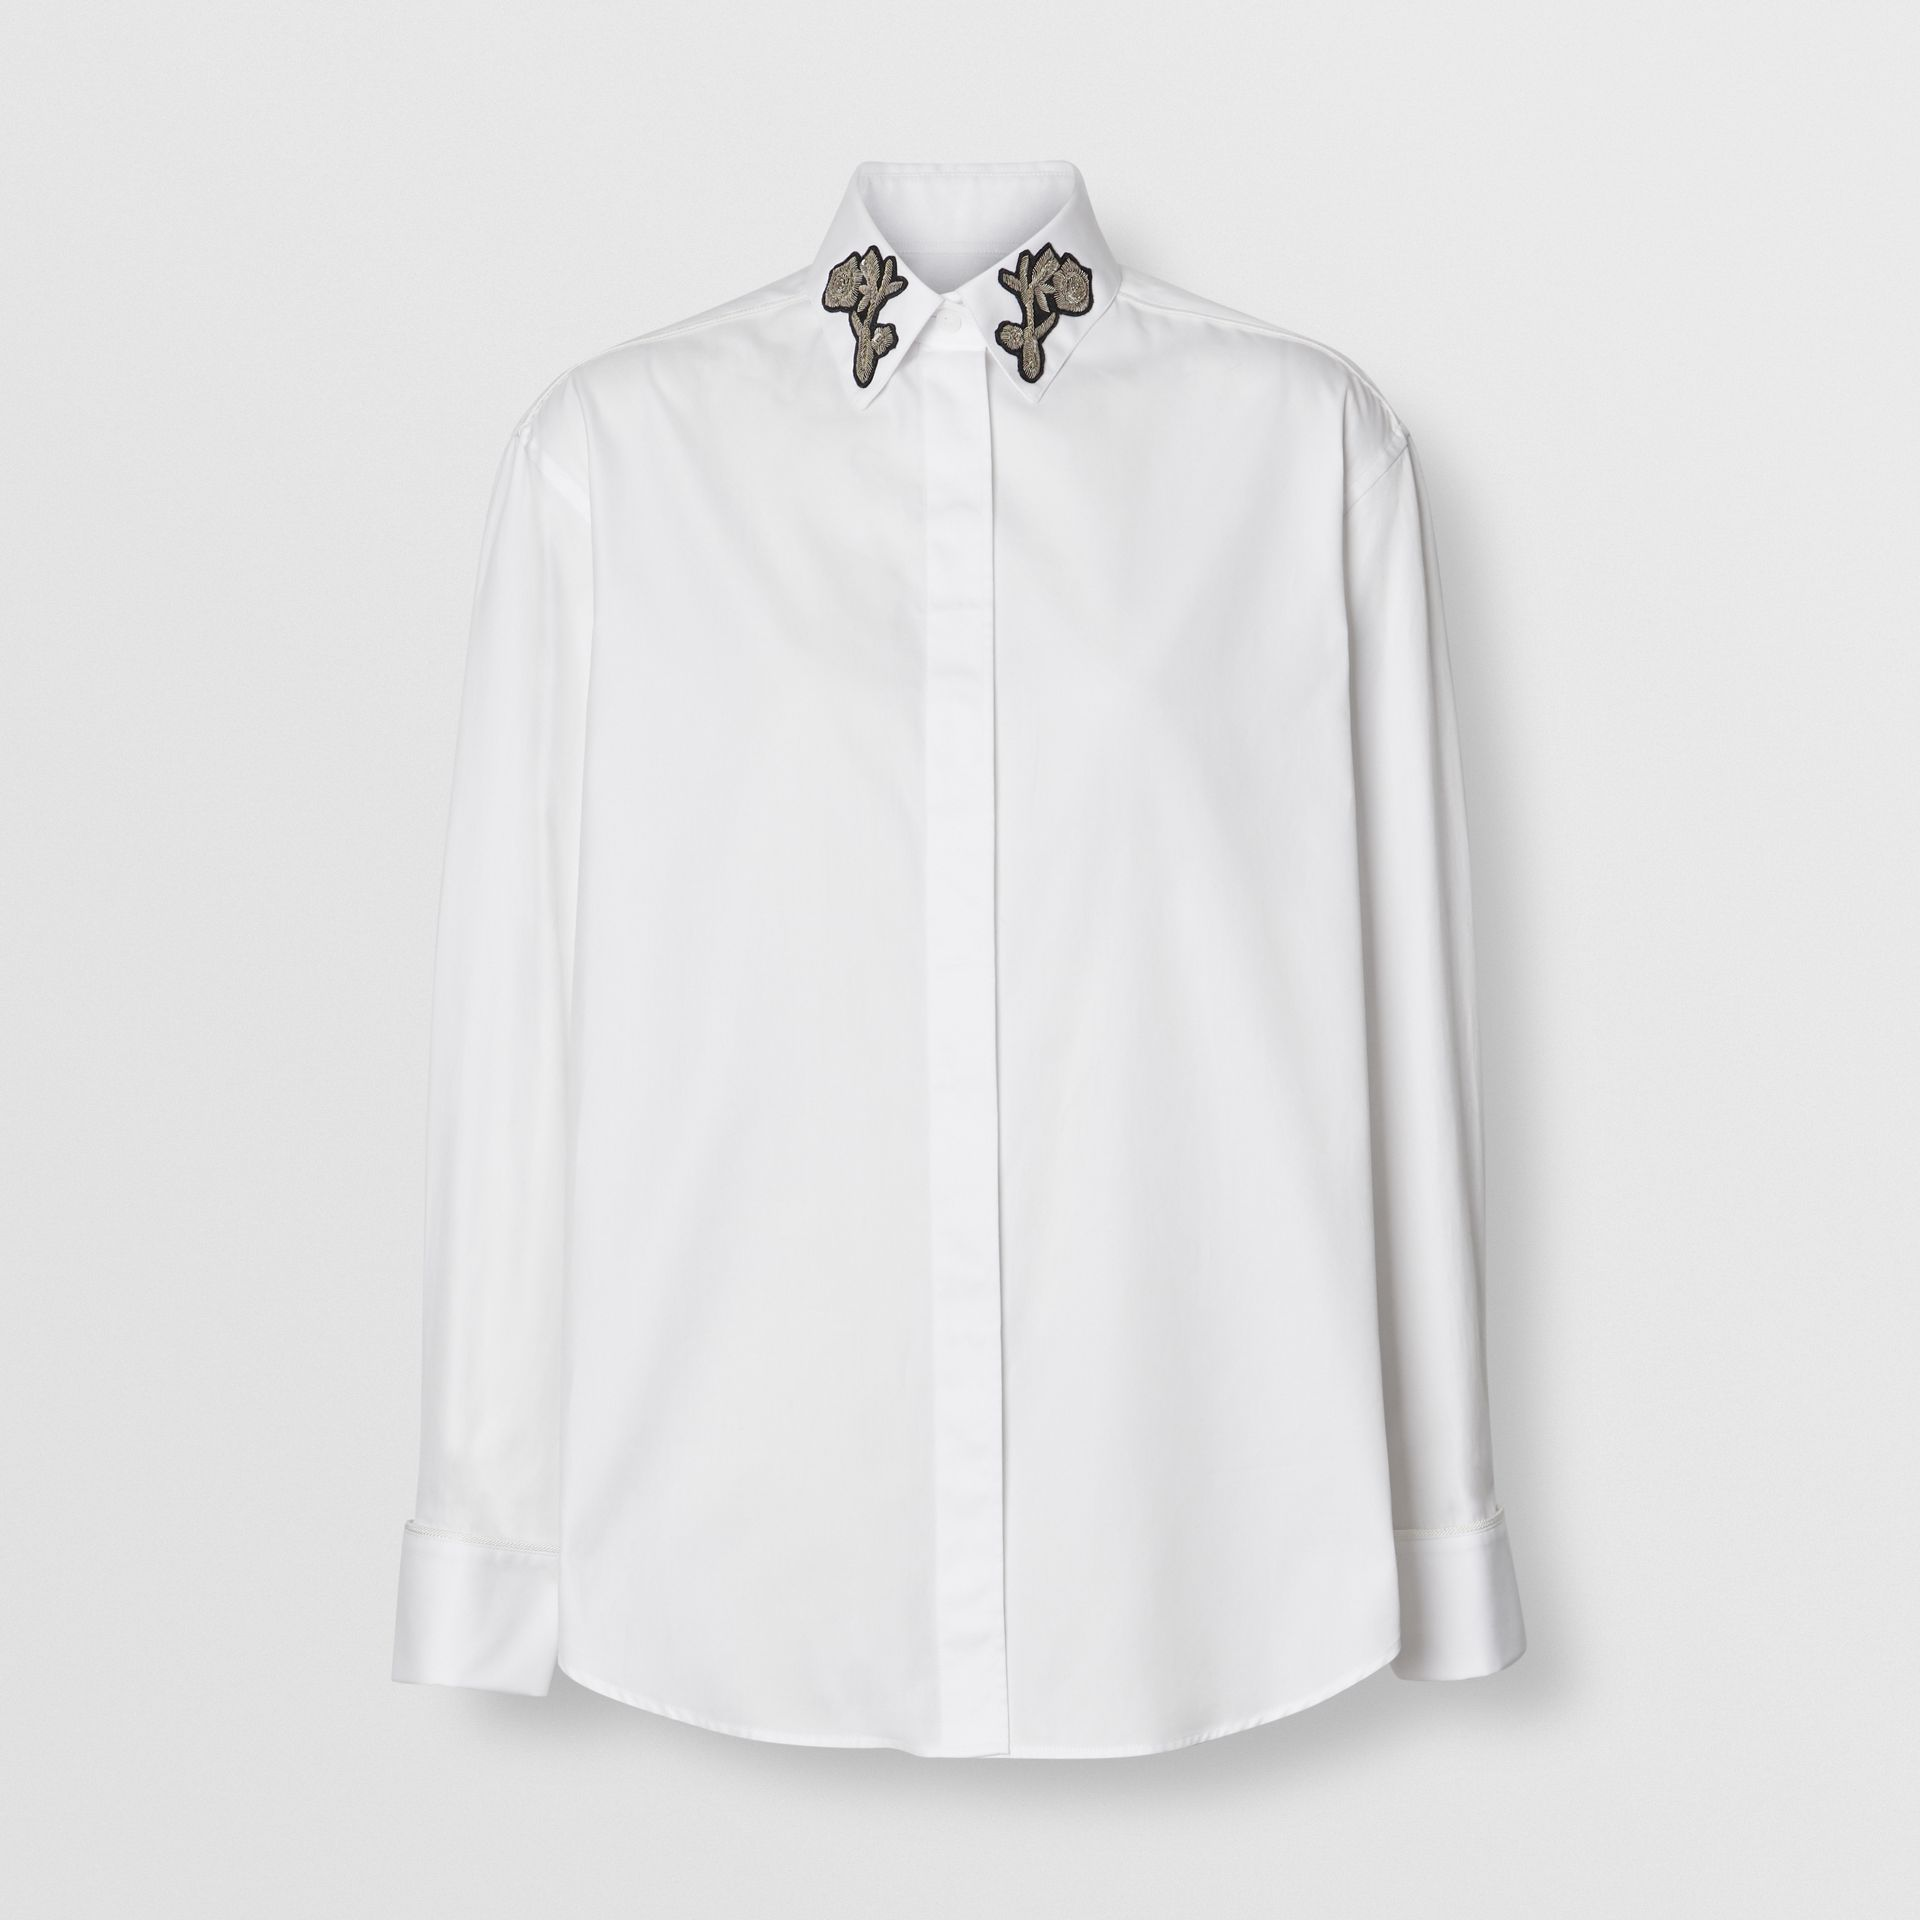 Bullion Floral Cotton Twill Shirt in White - Women | Burberry United States - gallery image 3